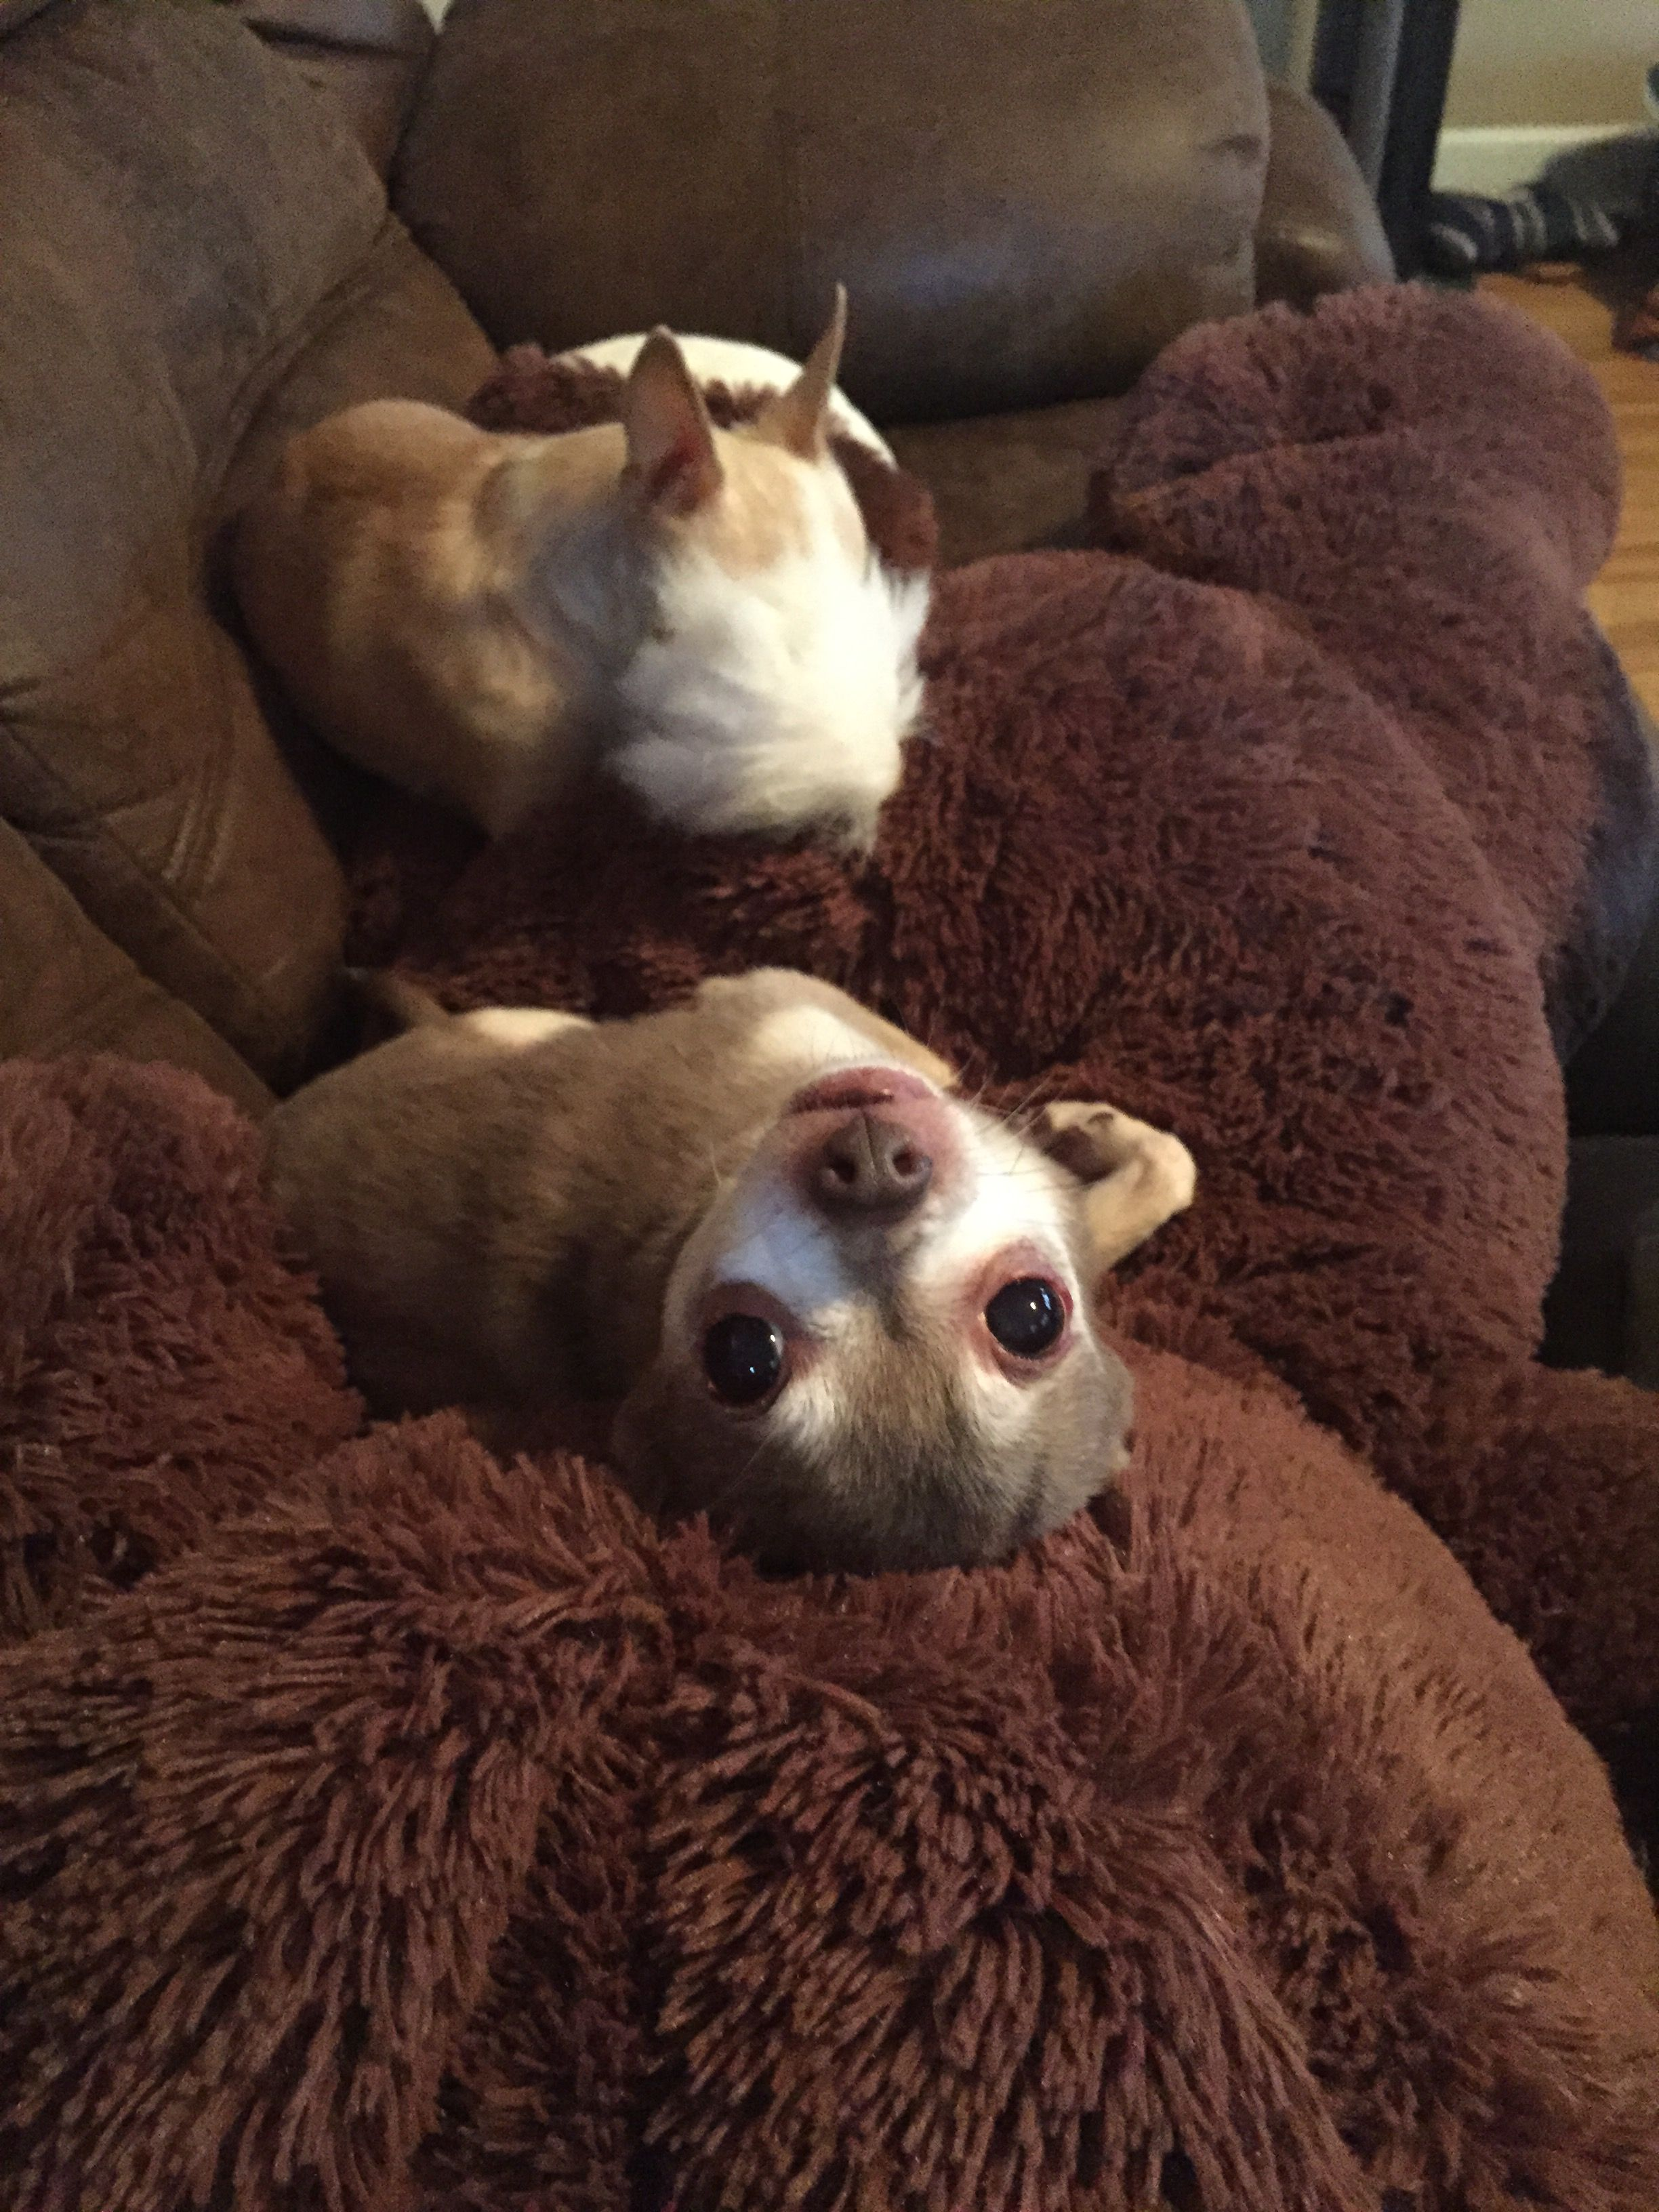 Pin By Karina Stern On Group Chihuahuas Best Dog Breed Ever Cute Chihuahua Chihuahua Lover Chihuahua Love